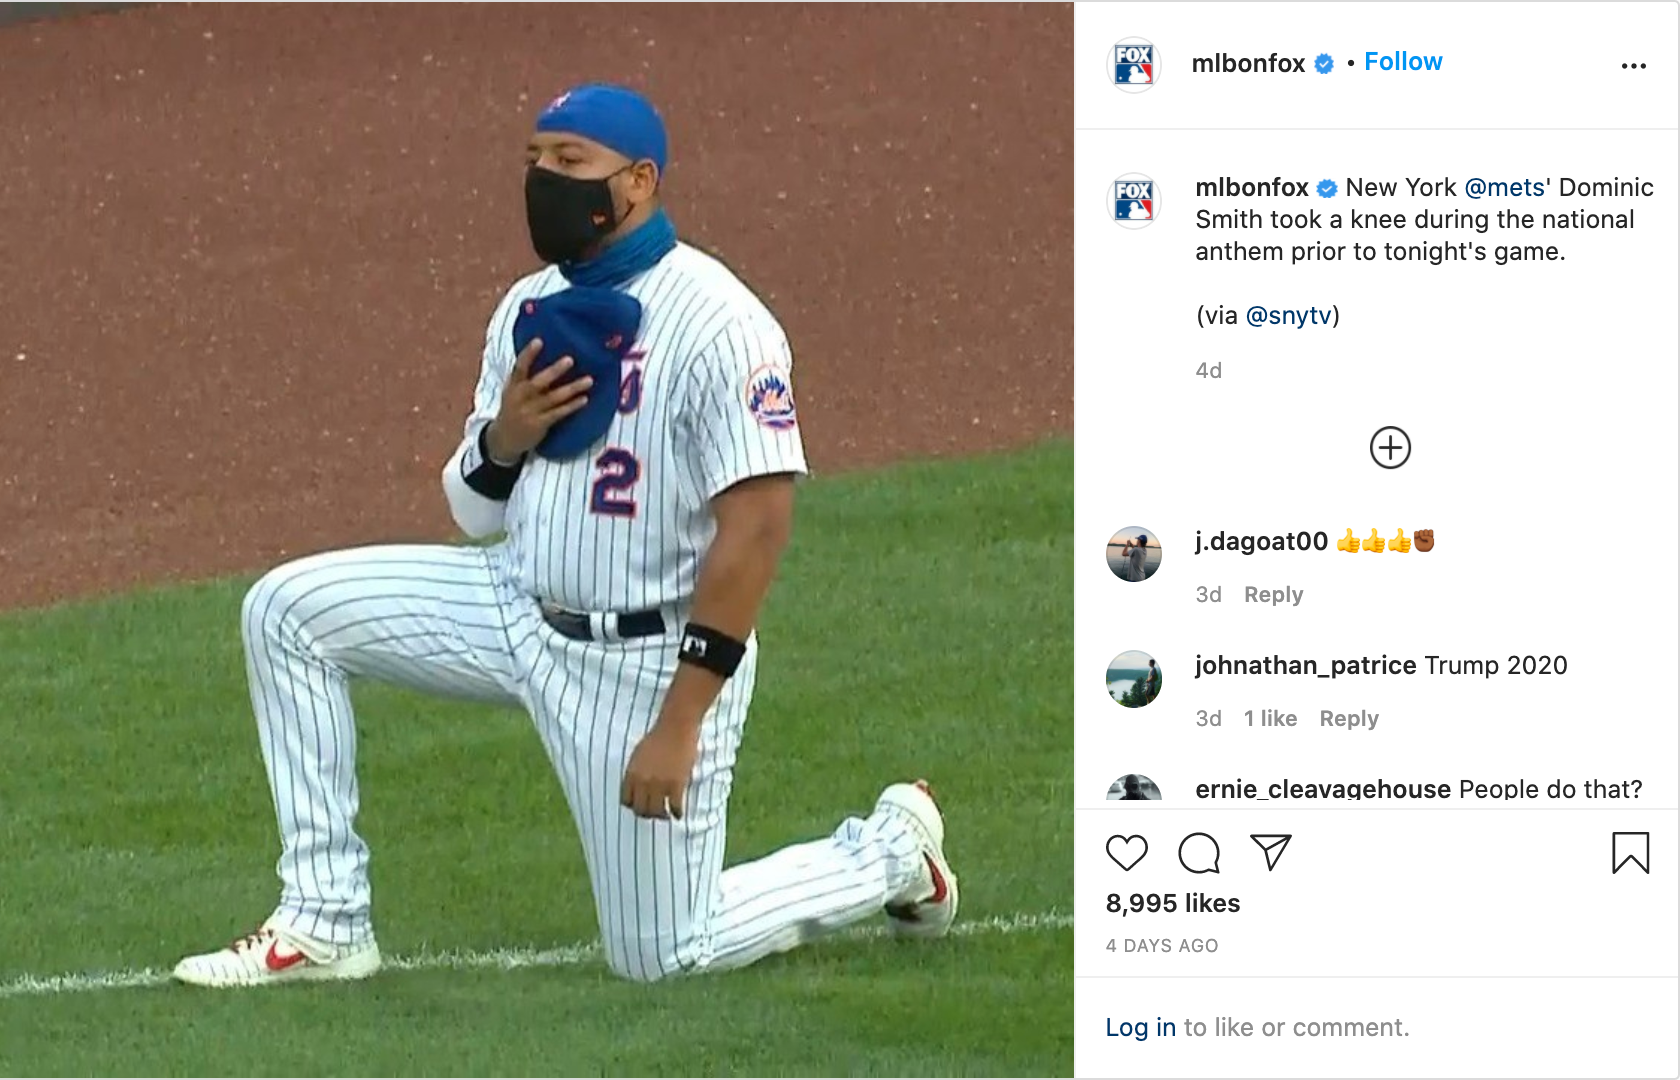 nymets insta post 1